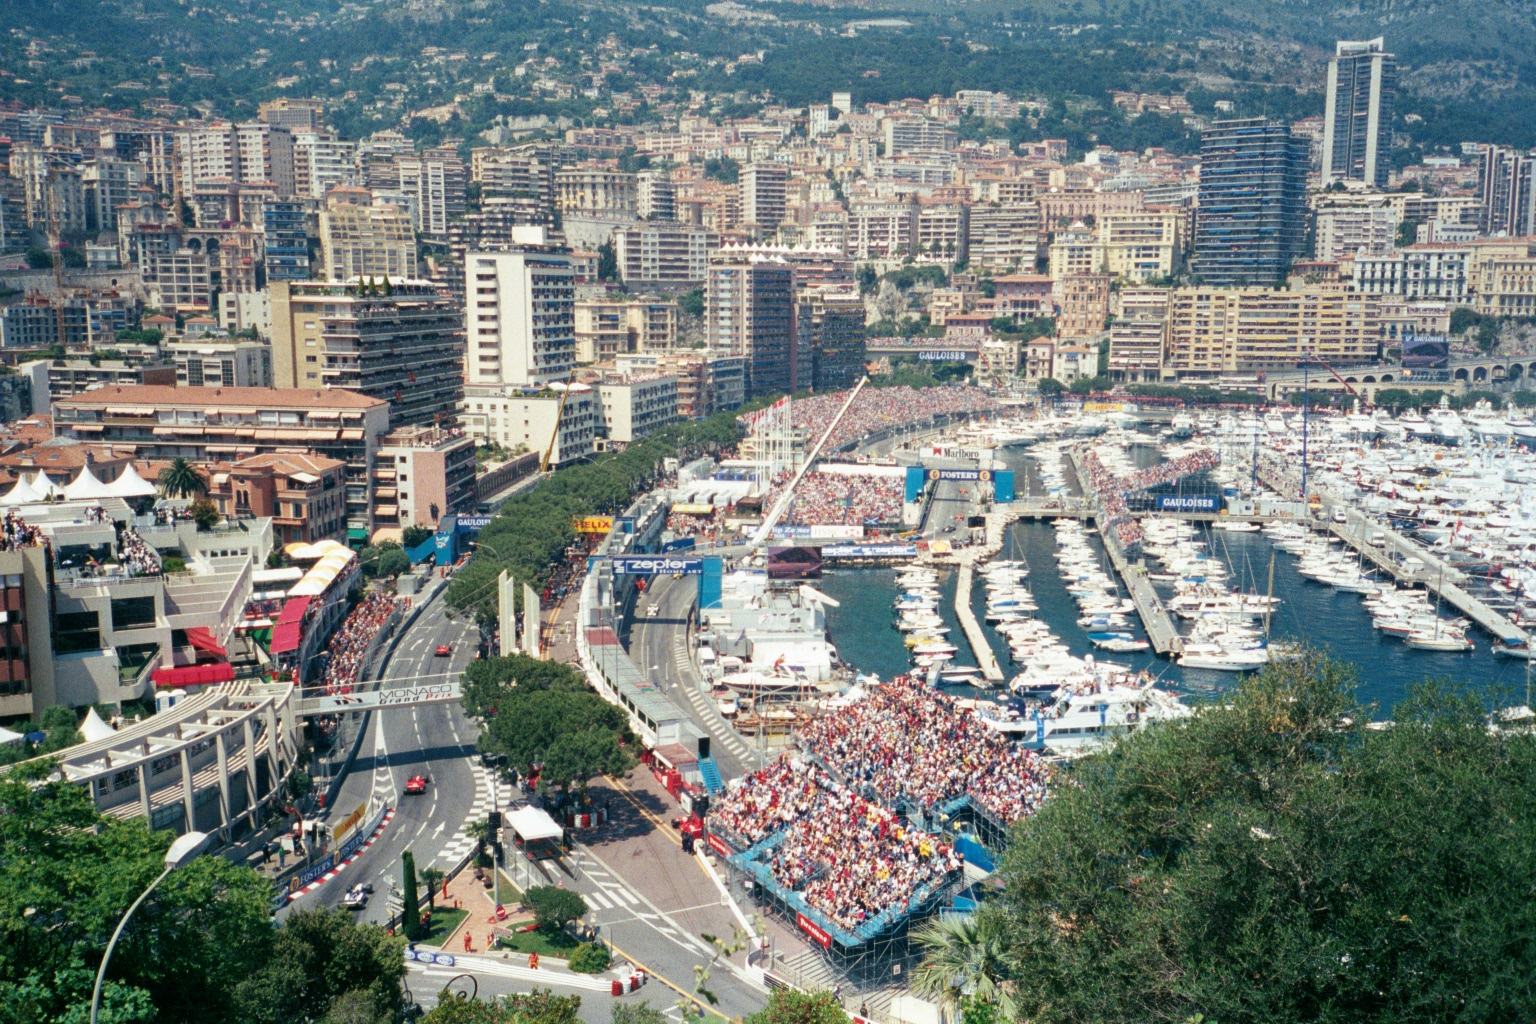 monaco grand prix 2014 live streaming free